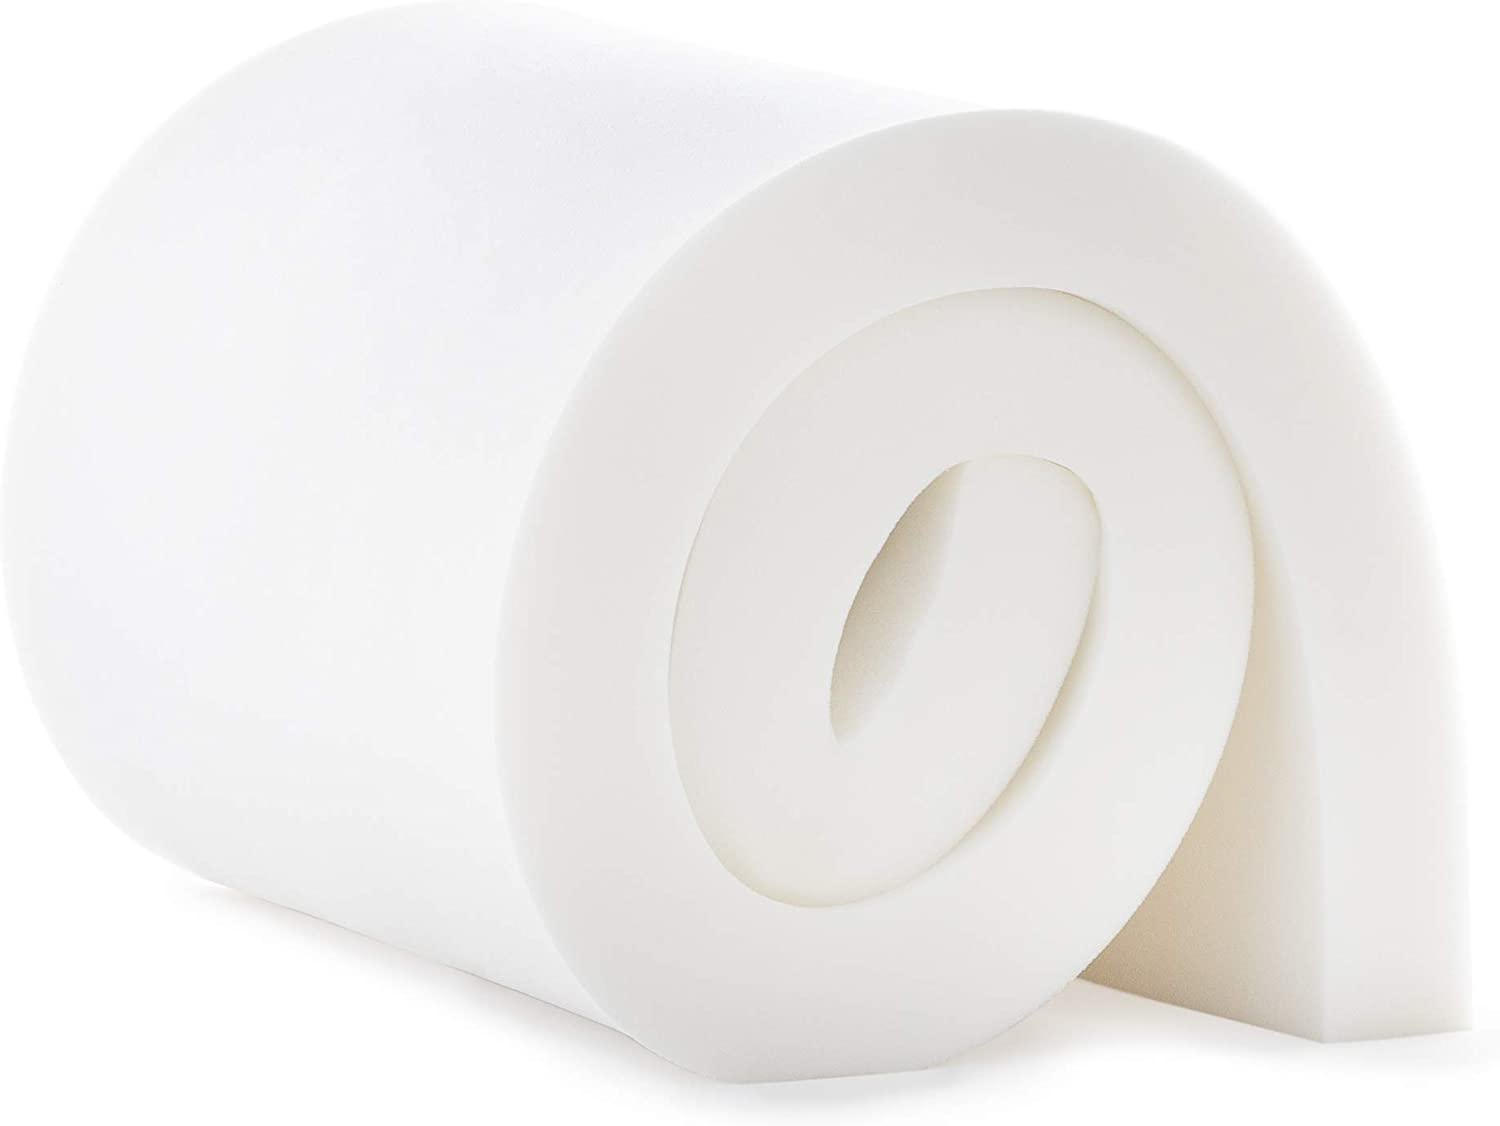 """Linenspa LS3247225UF Upholstery High DensityCushionCraft Foam-Perfect for Chairs, Sofas,Headboards, and DIY Projects, 3"""" x 24"""" x 72"""", White"""